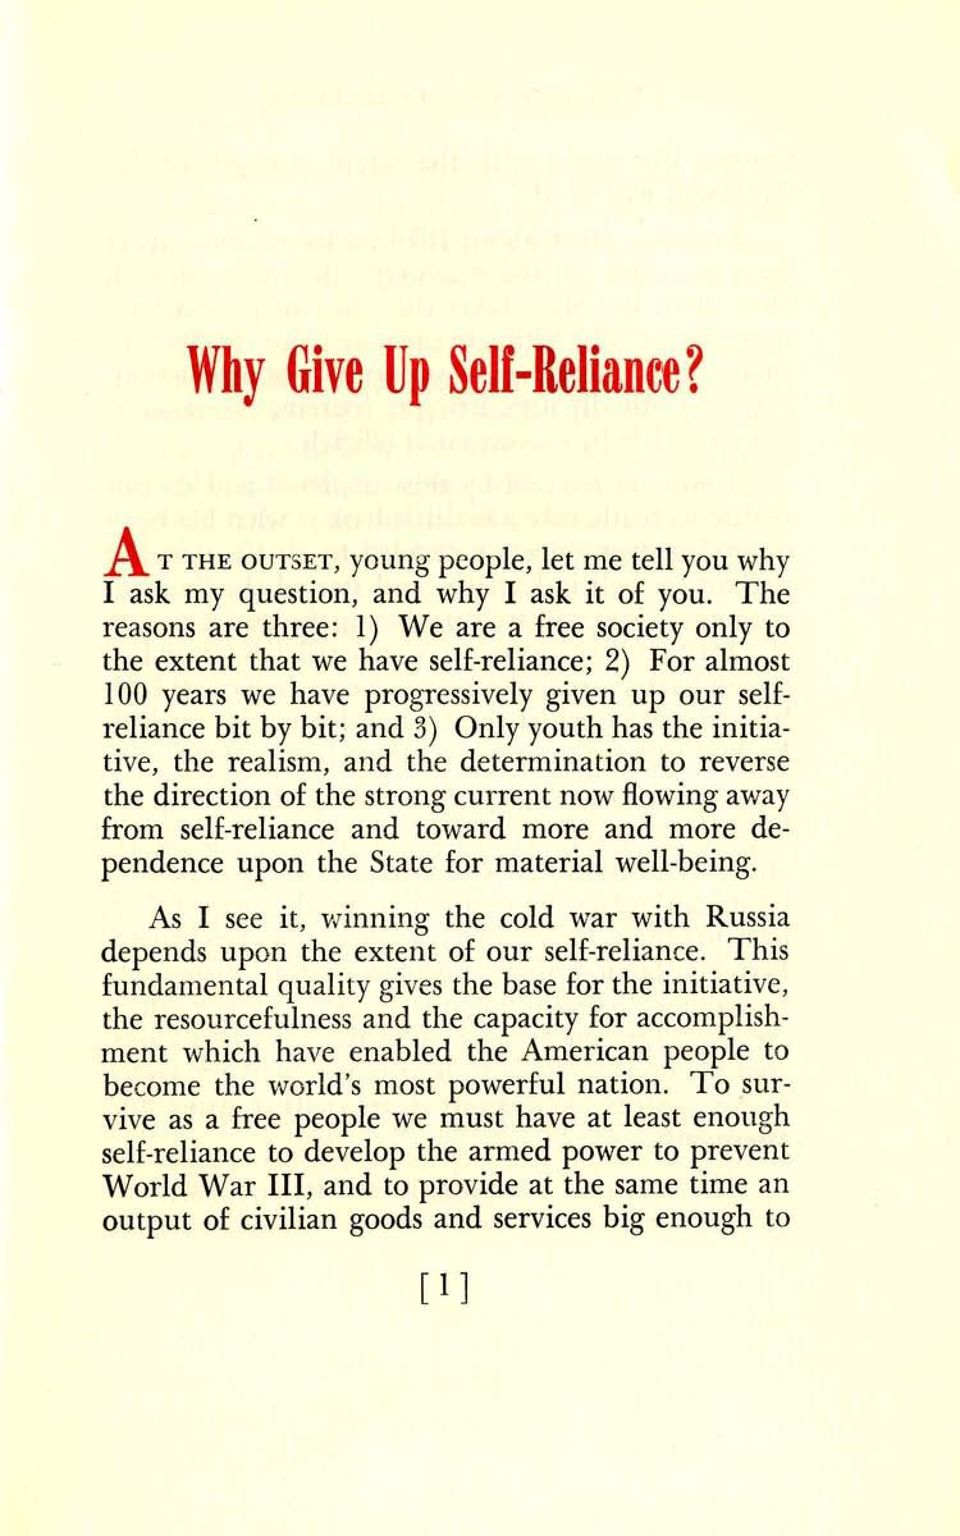 has the initiative, the realism, and the determination to reverse the direction of the strong current now flowing away from self-reliance and toward more and more dependence upon the State for